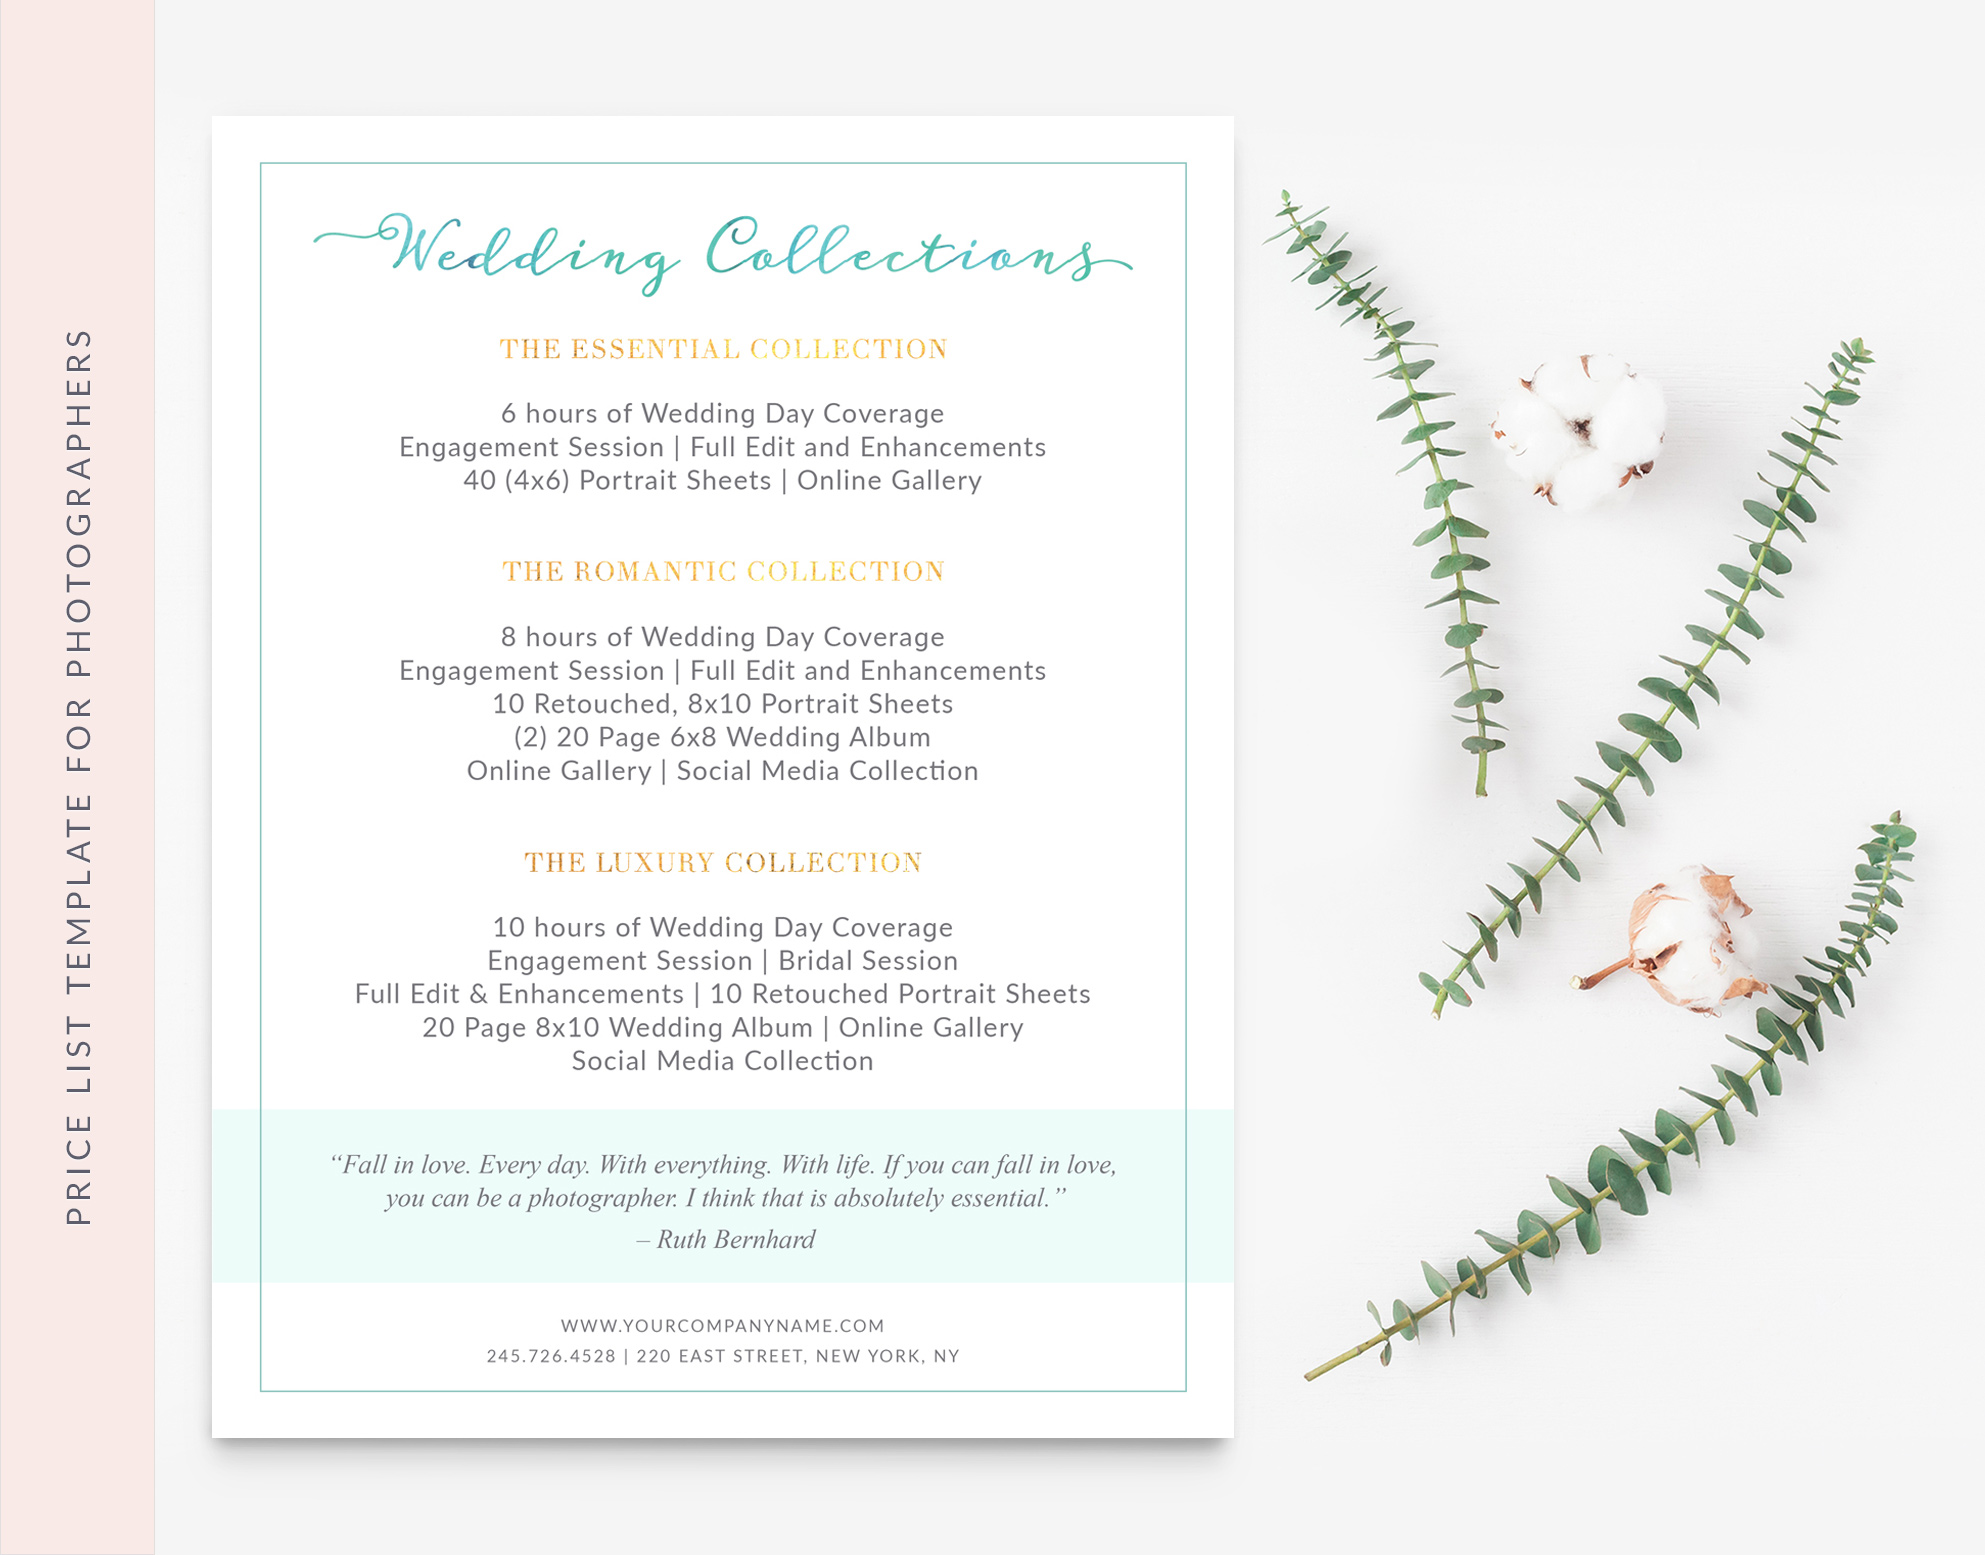 Price Sheet Template for wedding photographer